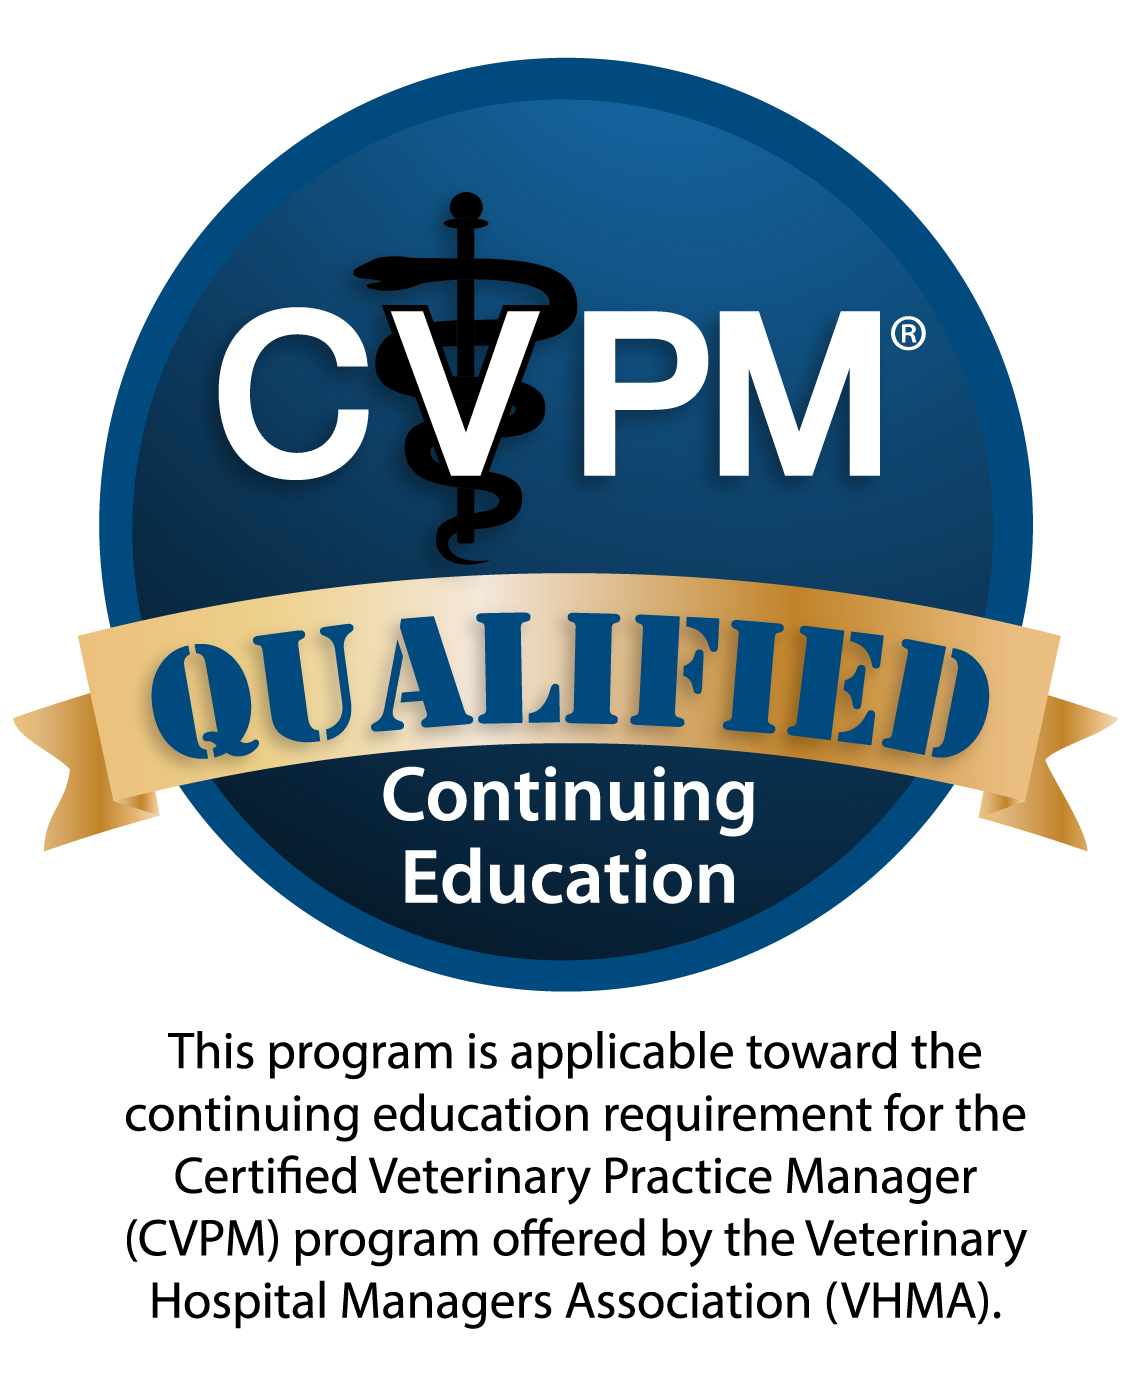 CVPMCEqualified2015 disclaimer